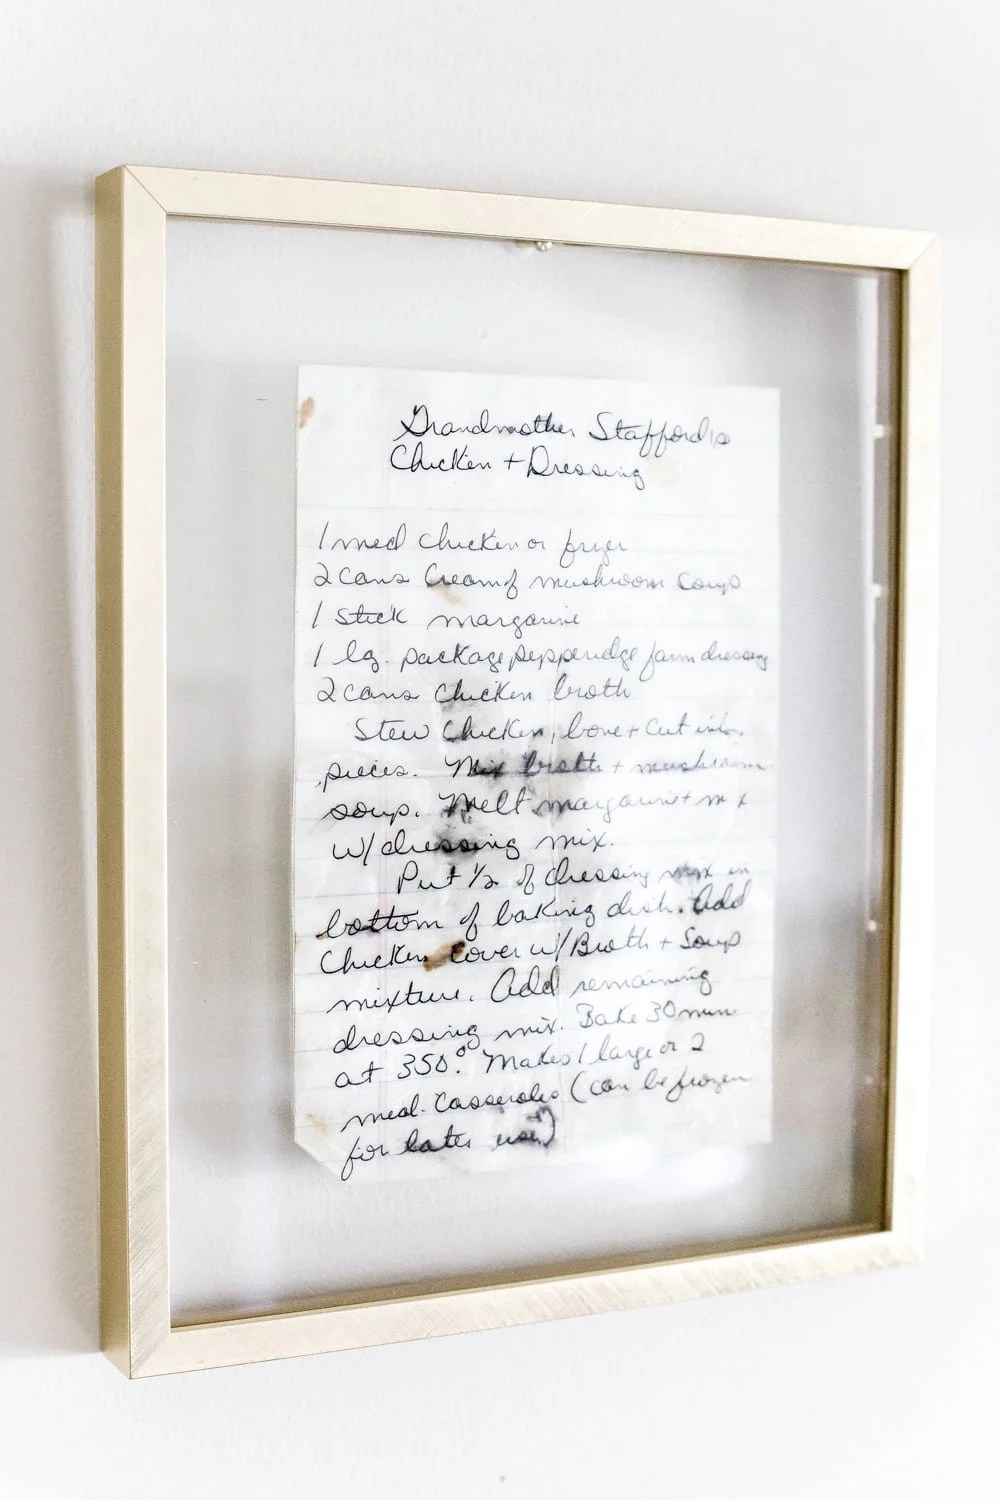 Sentimental art idea - preserve and frame handwritten recipes and letters